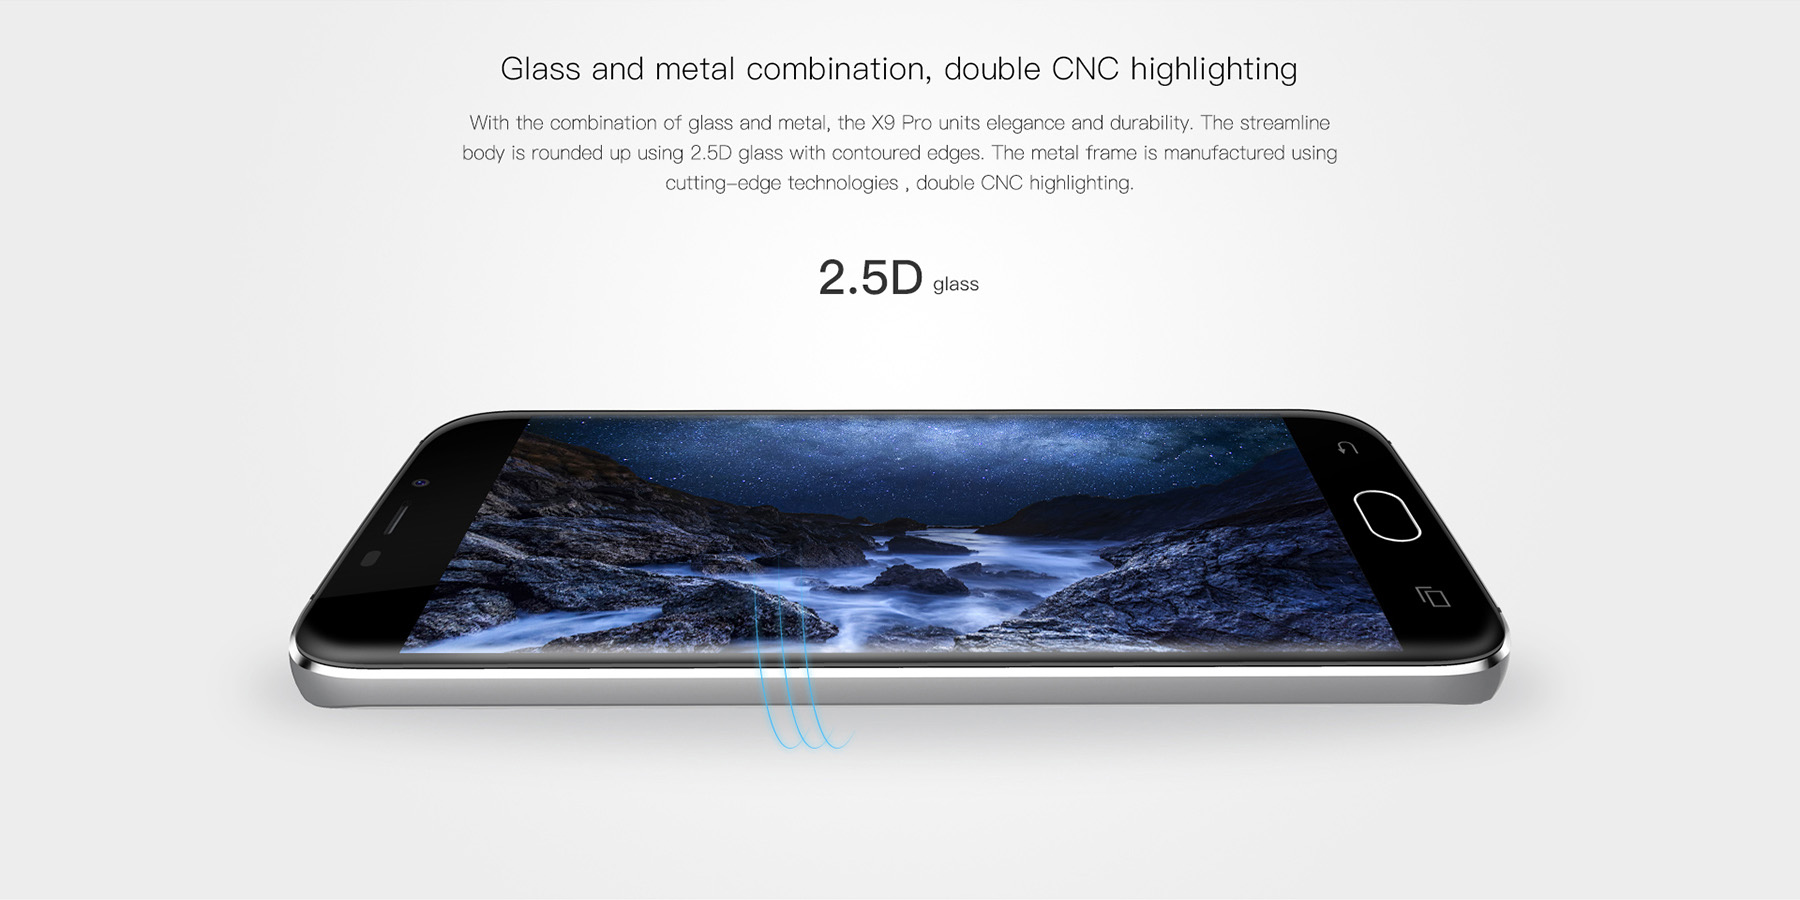 DOOGEE X9 Pro Android 6.0 5.5 inch 4G Phablet MTK6737 Quad Core 1.3GHz 2GB RAM 16GB ROM Fingerprint Scanner GPS